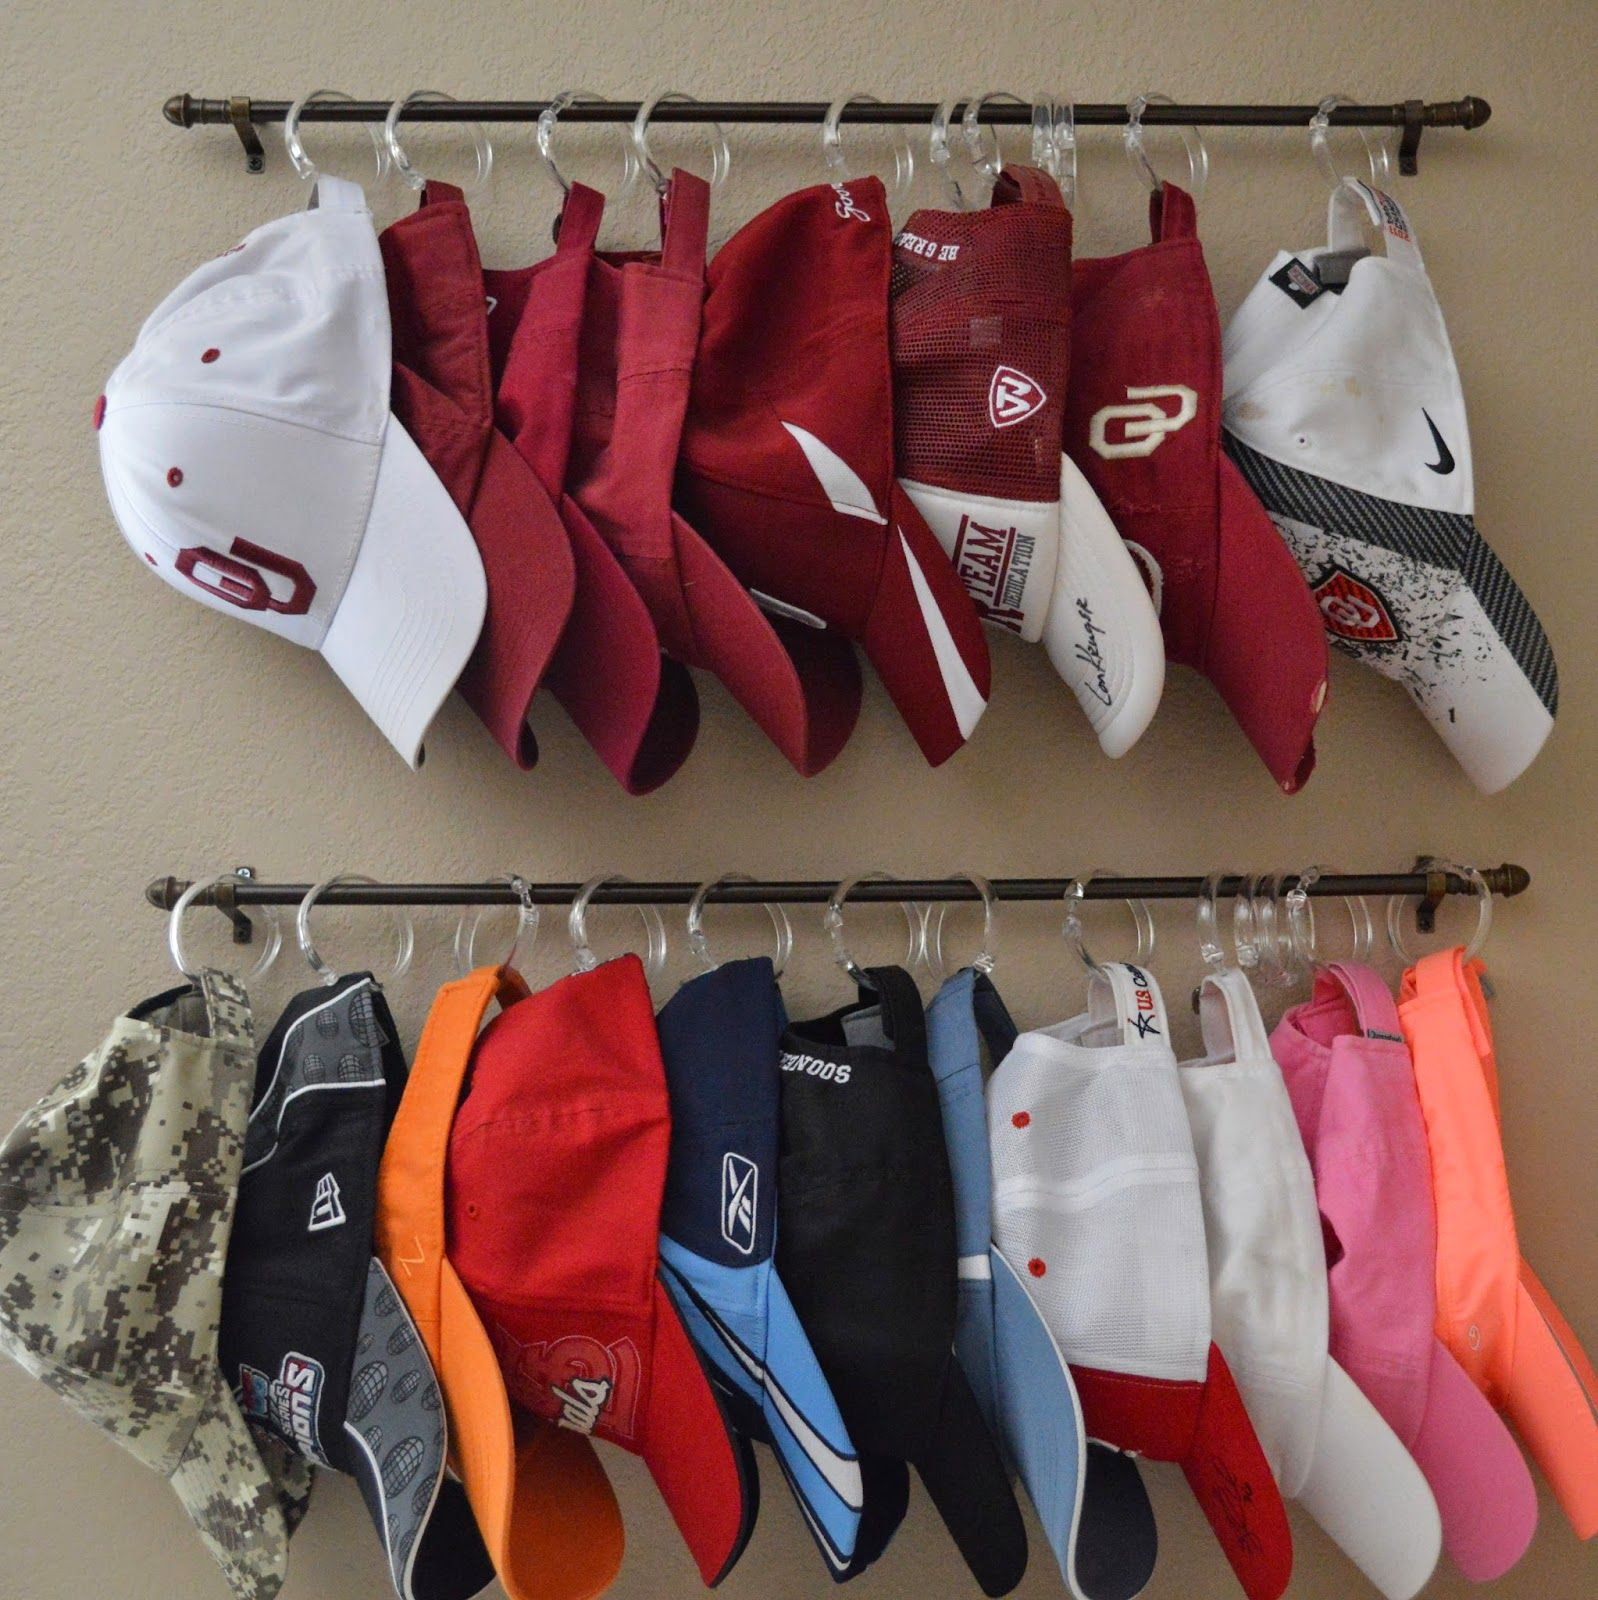 Diy Hanging Hat Racks So Clever These Are Awesome Home